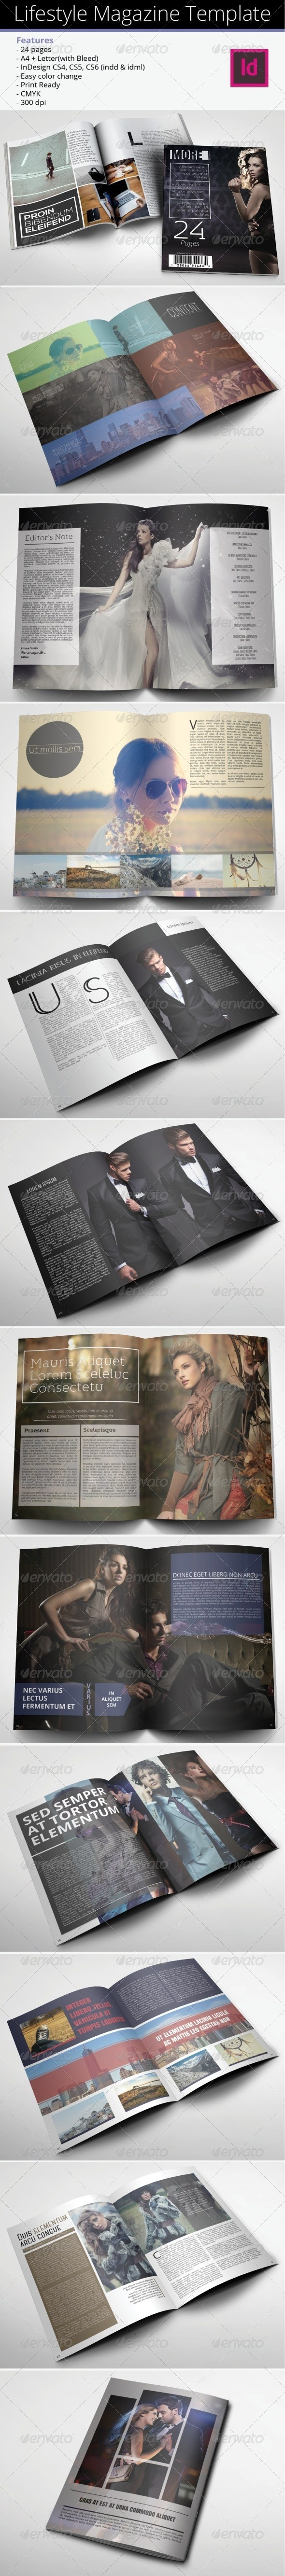 GraphicRiver Lifestyle Magazine Template 6825764